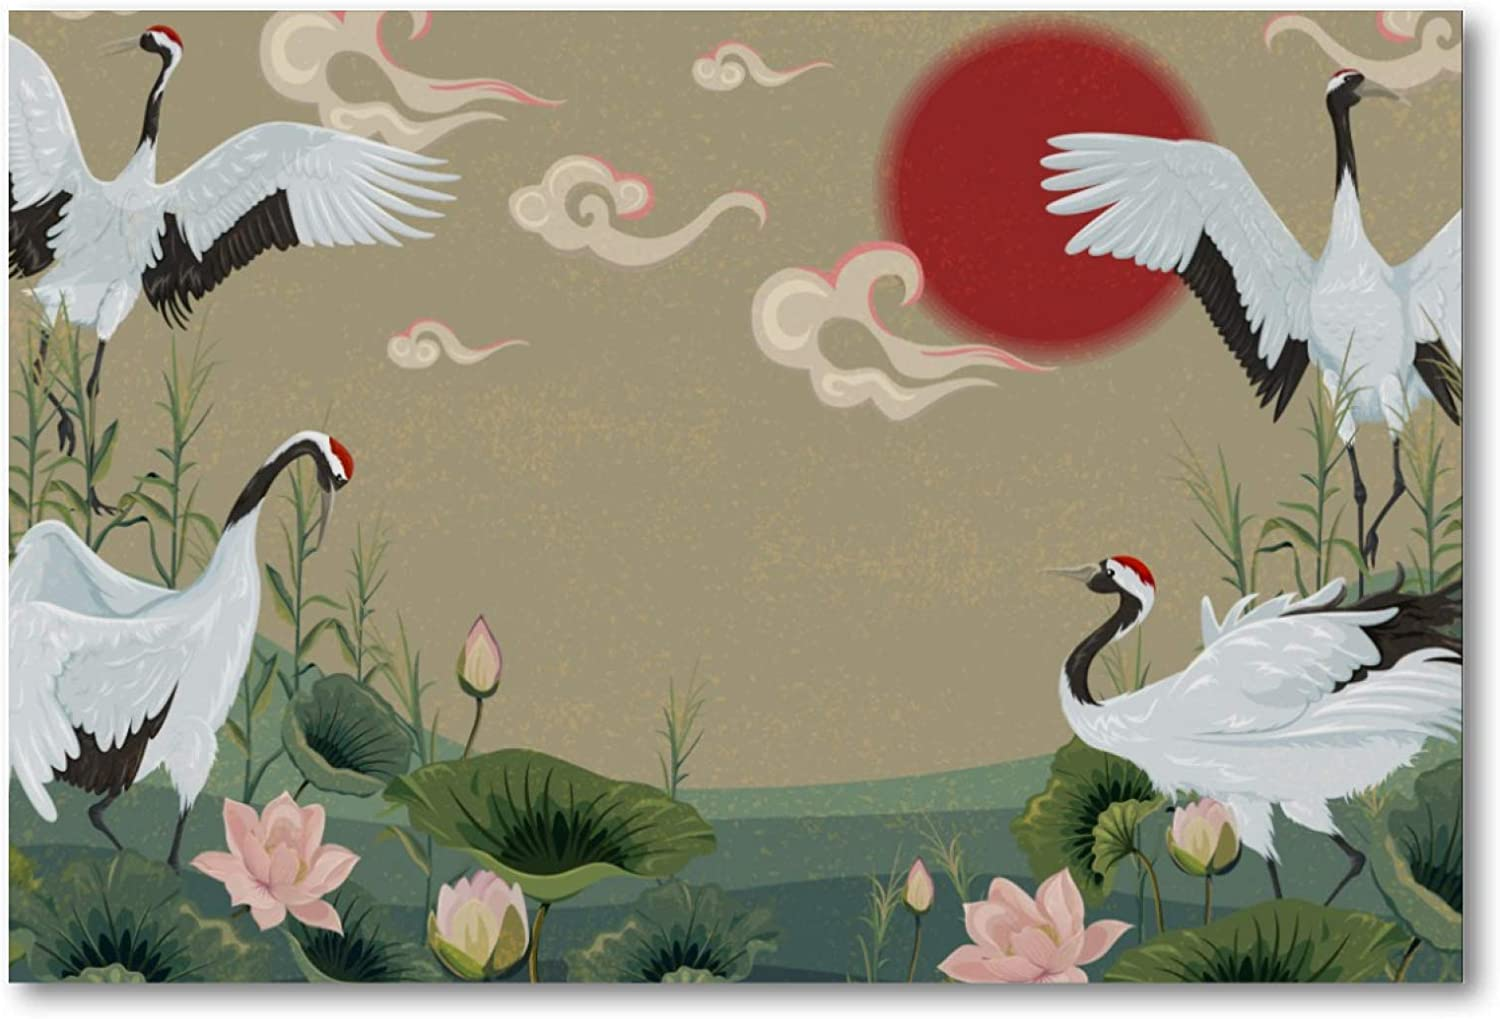 imobaby Purchase Wall Art Oil Painting Sunset Po In Courier shipping free Lotus Cranes Japanese